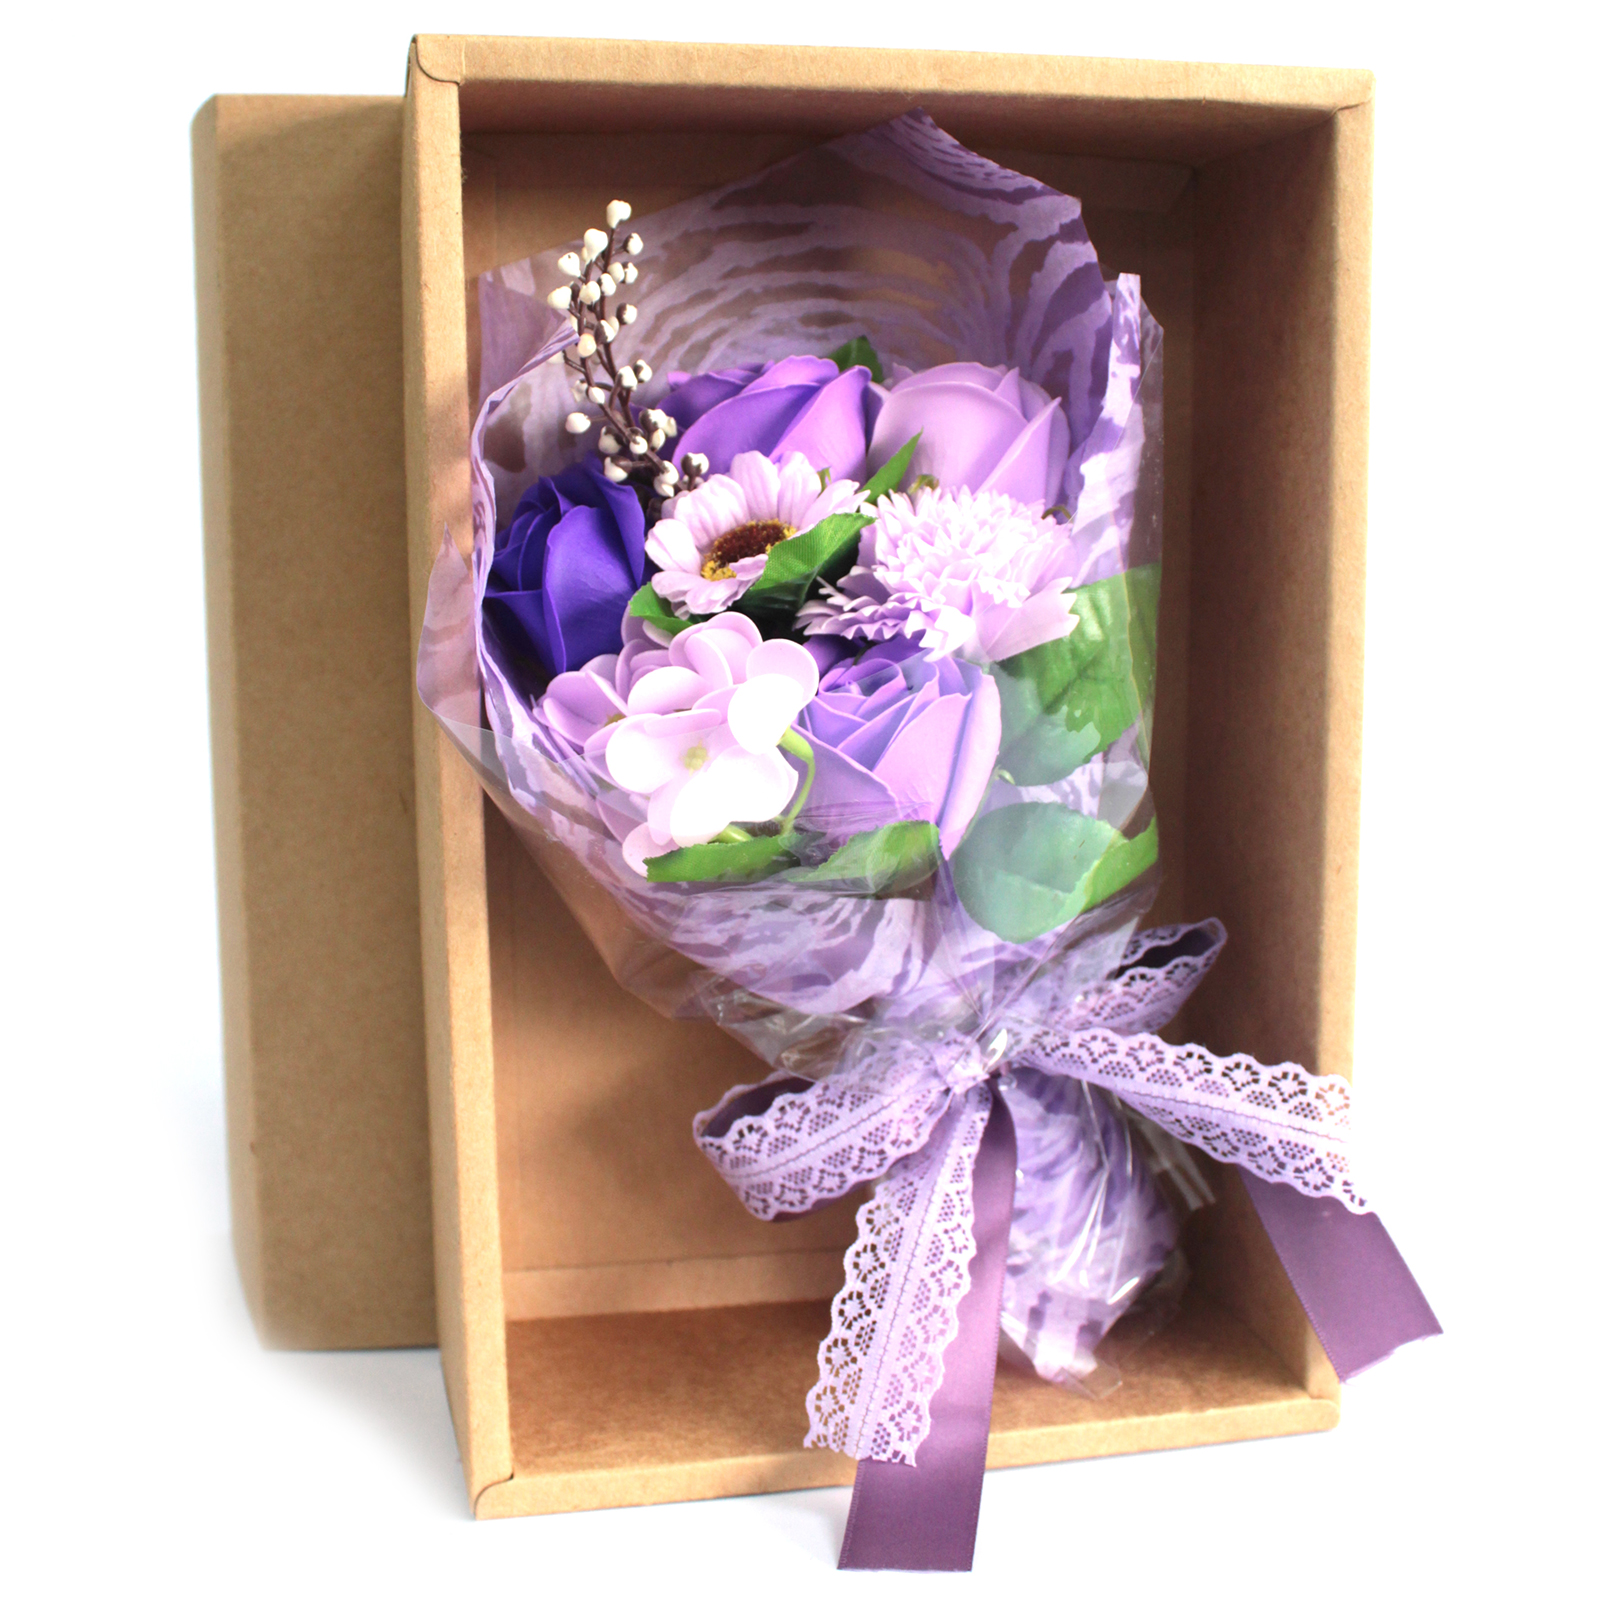 Boxed Hand Soap Flower Bouquet - Purple